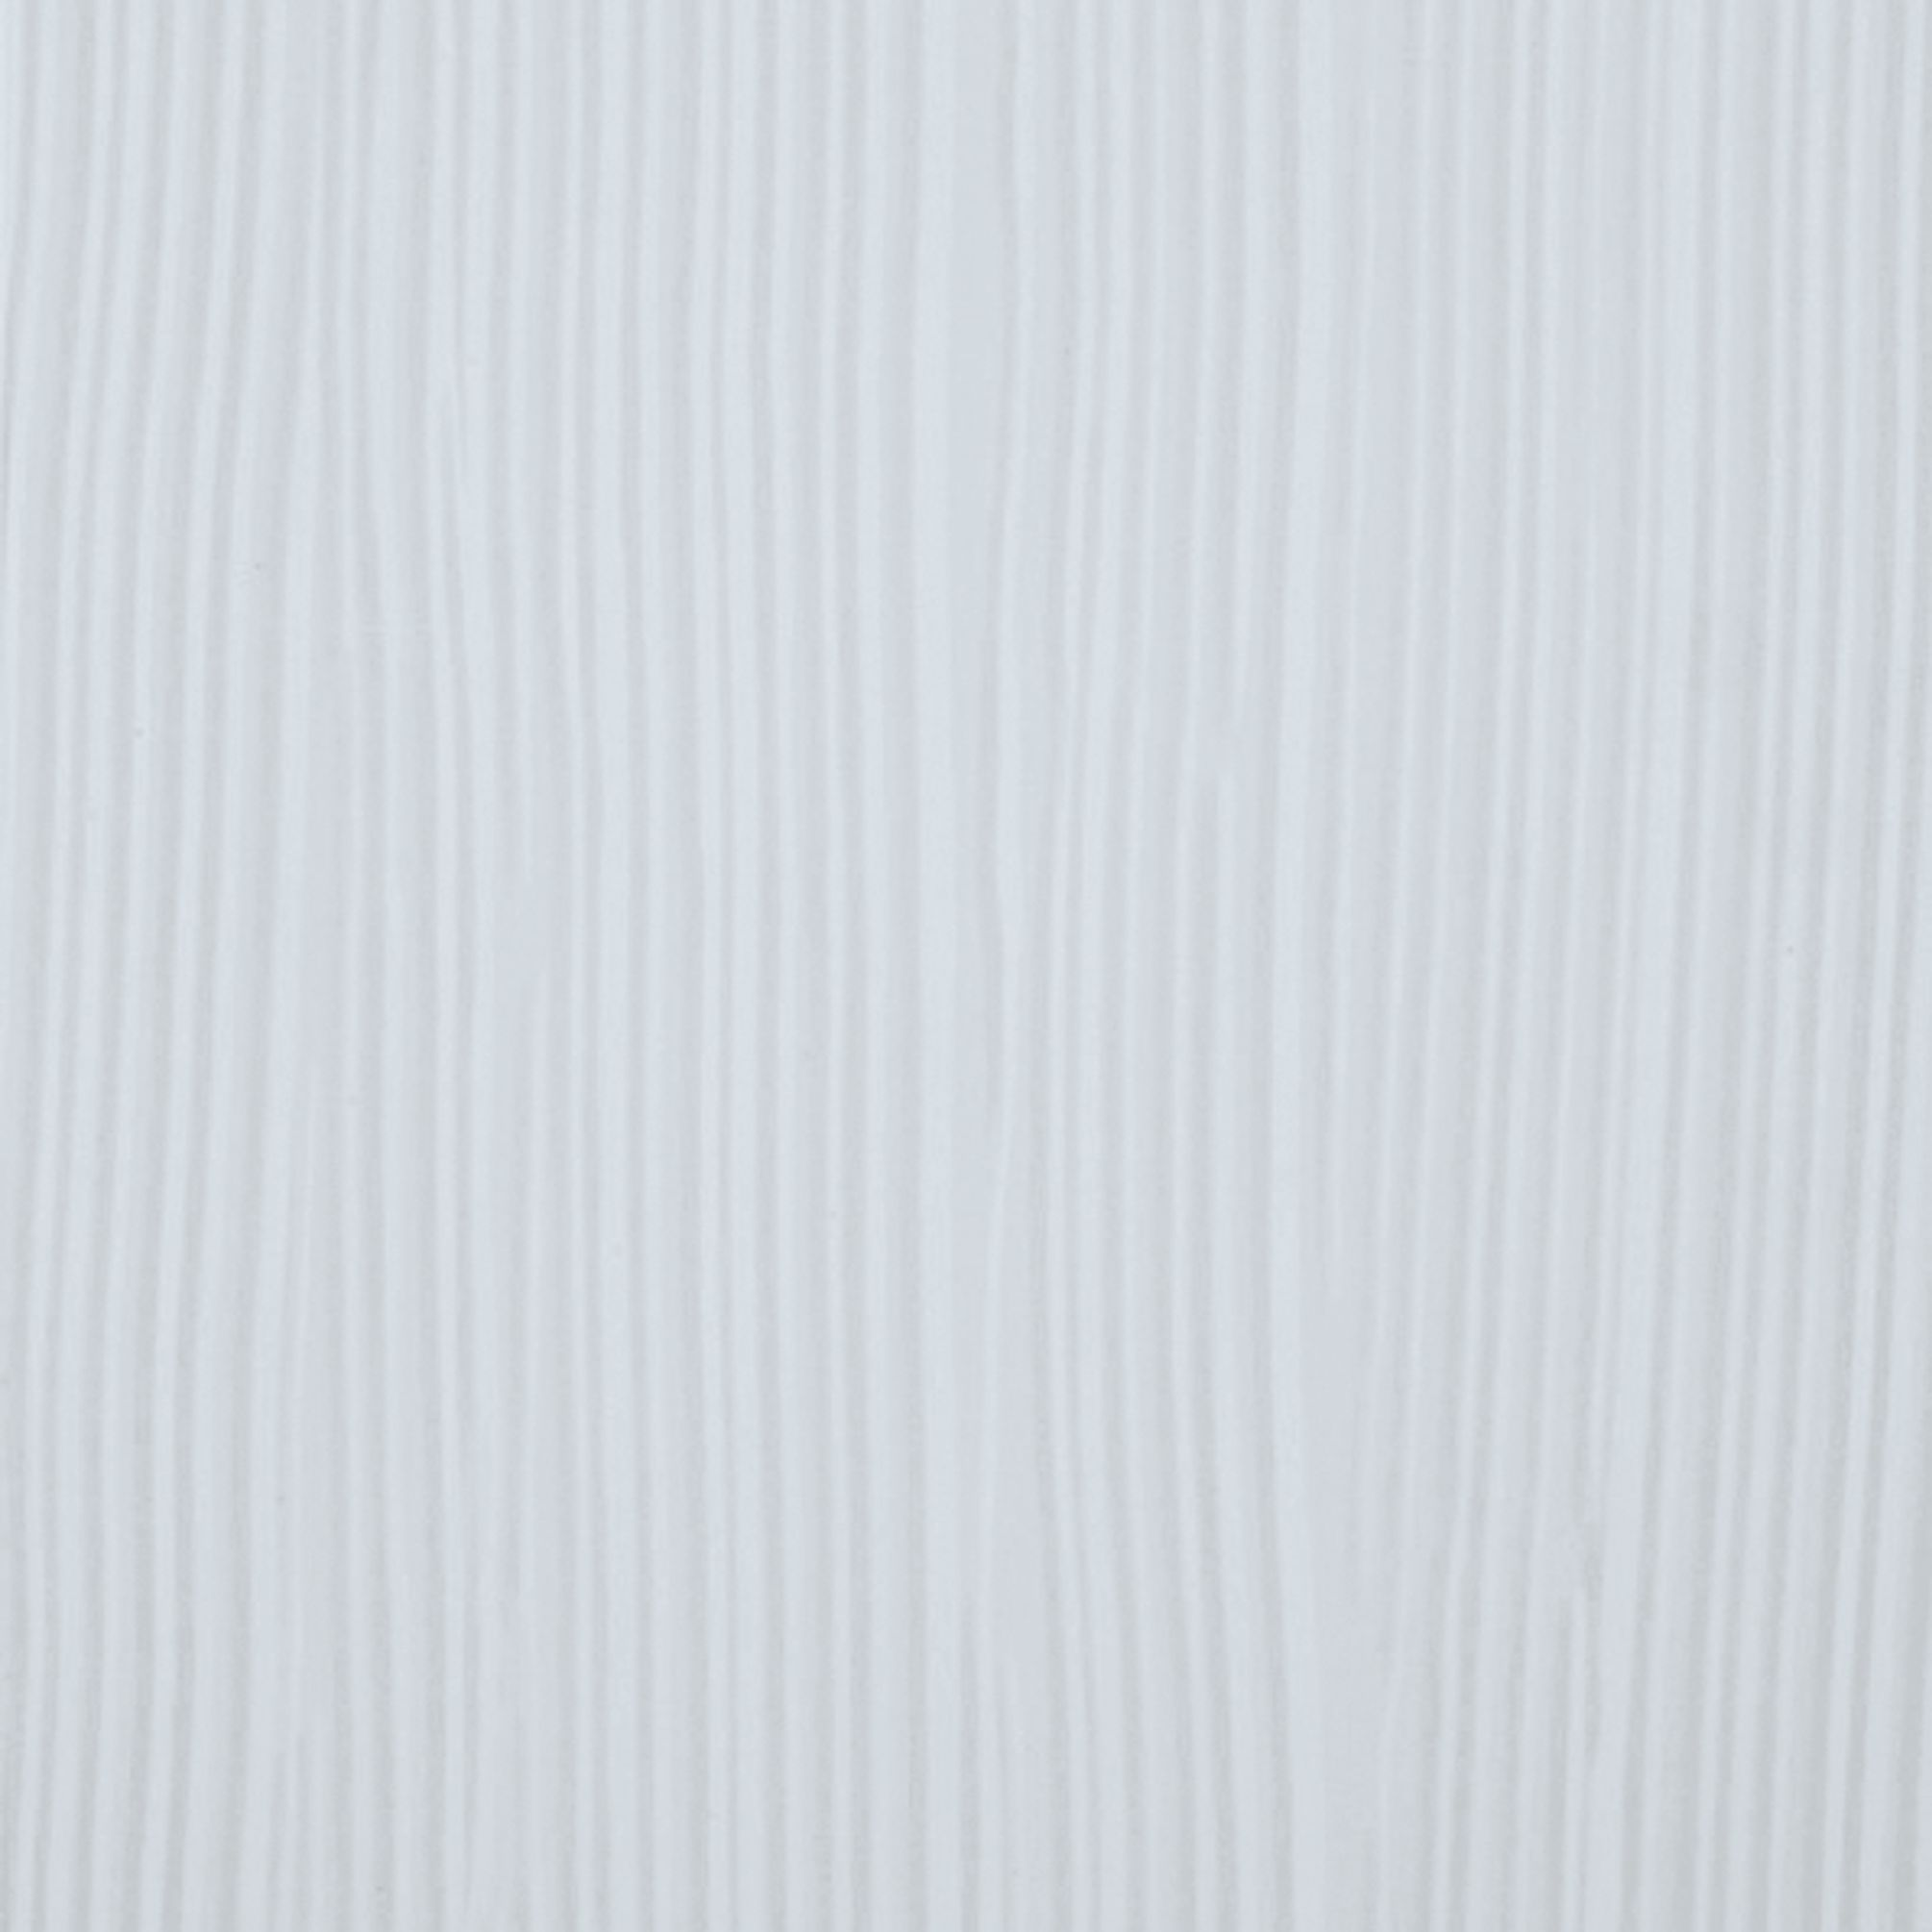 BampQ White Cladding L2400 Mm W100 Mm T10 Mm Pack Of